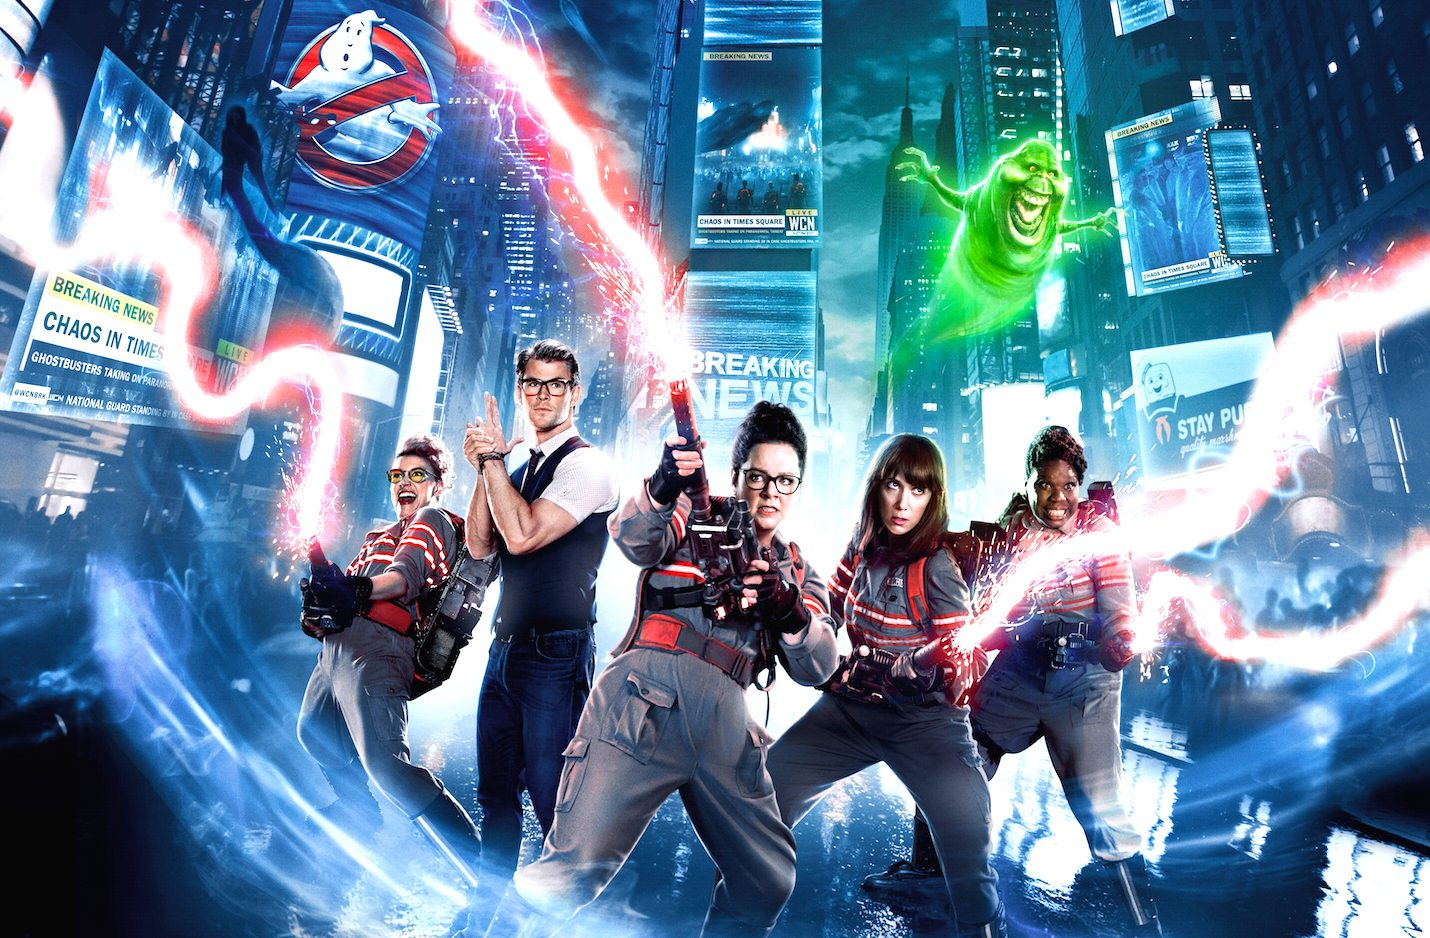 Review: The 'Ghostbusters' Reboot Suffers Most From Forced Nostalgia